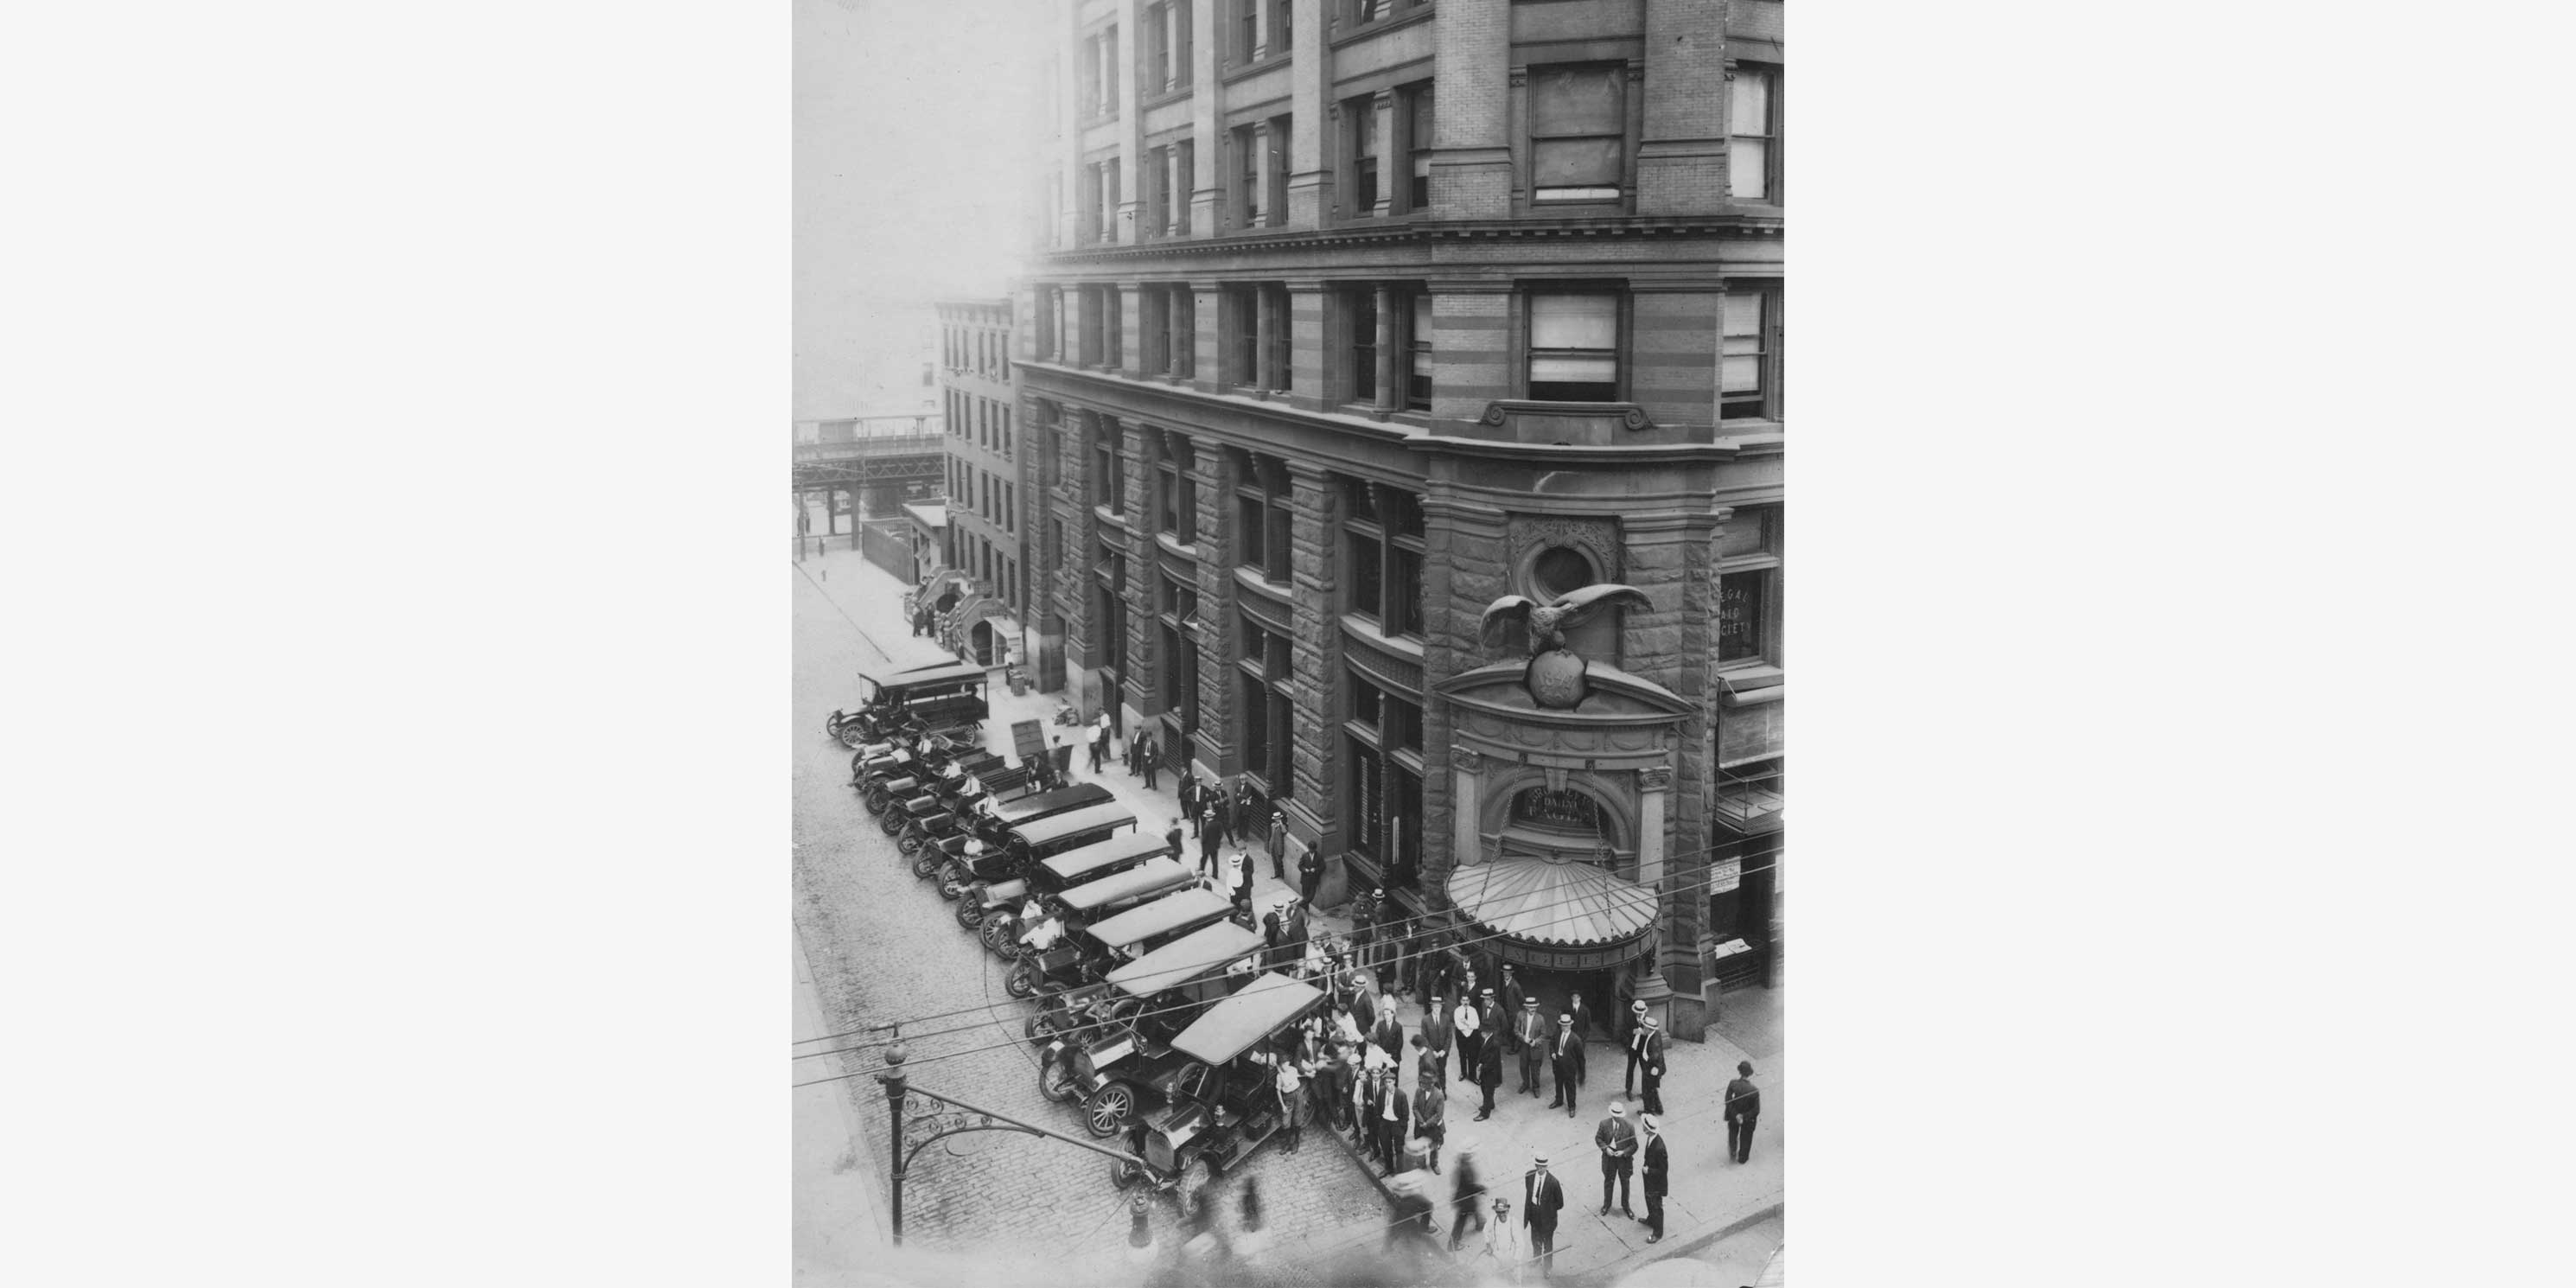 The Brooklyn Daily Eagle building in downtown Brooklyn in the 1920s. Photo: The Brooklyn Public Library.